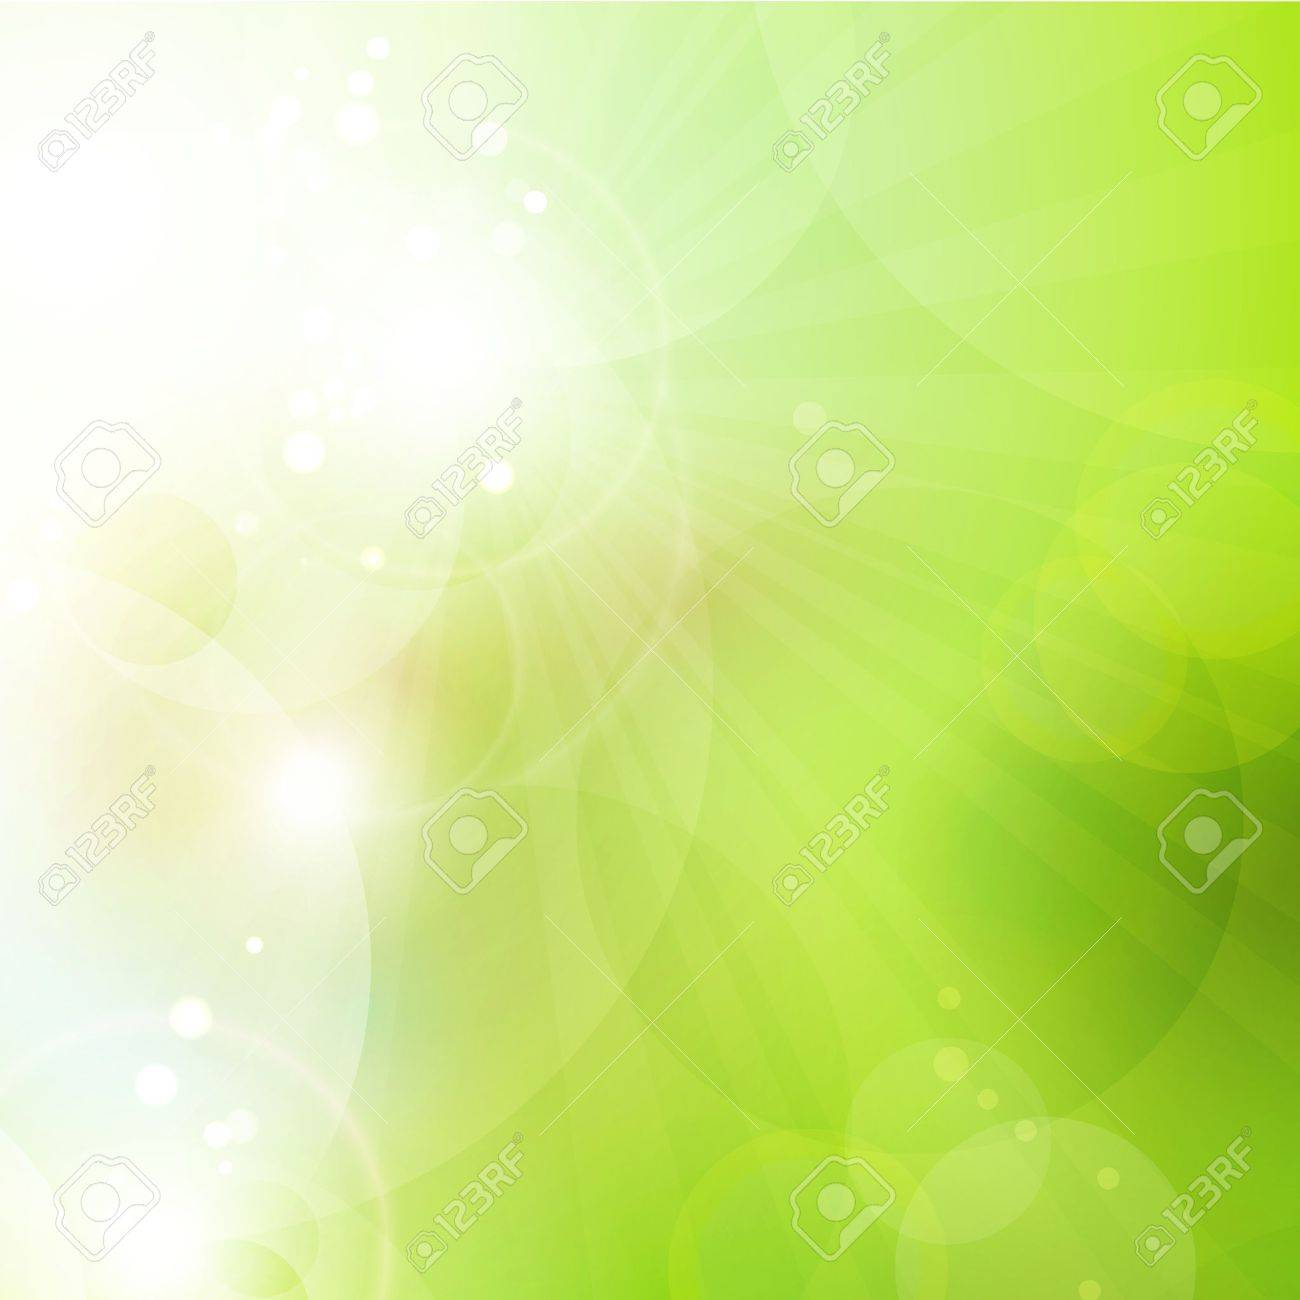 Abstract green blurry background with overlying semitransparent circles, light effects and sun burst Great spring or green environmental background Space for your text - 17133658